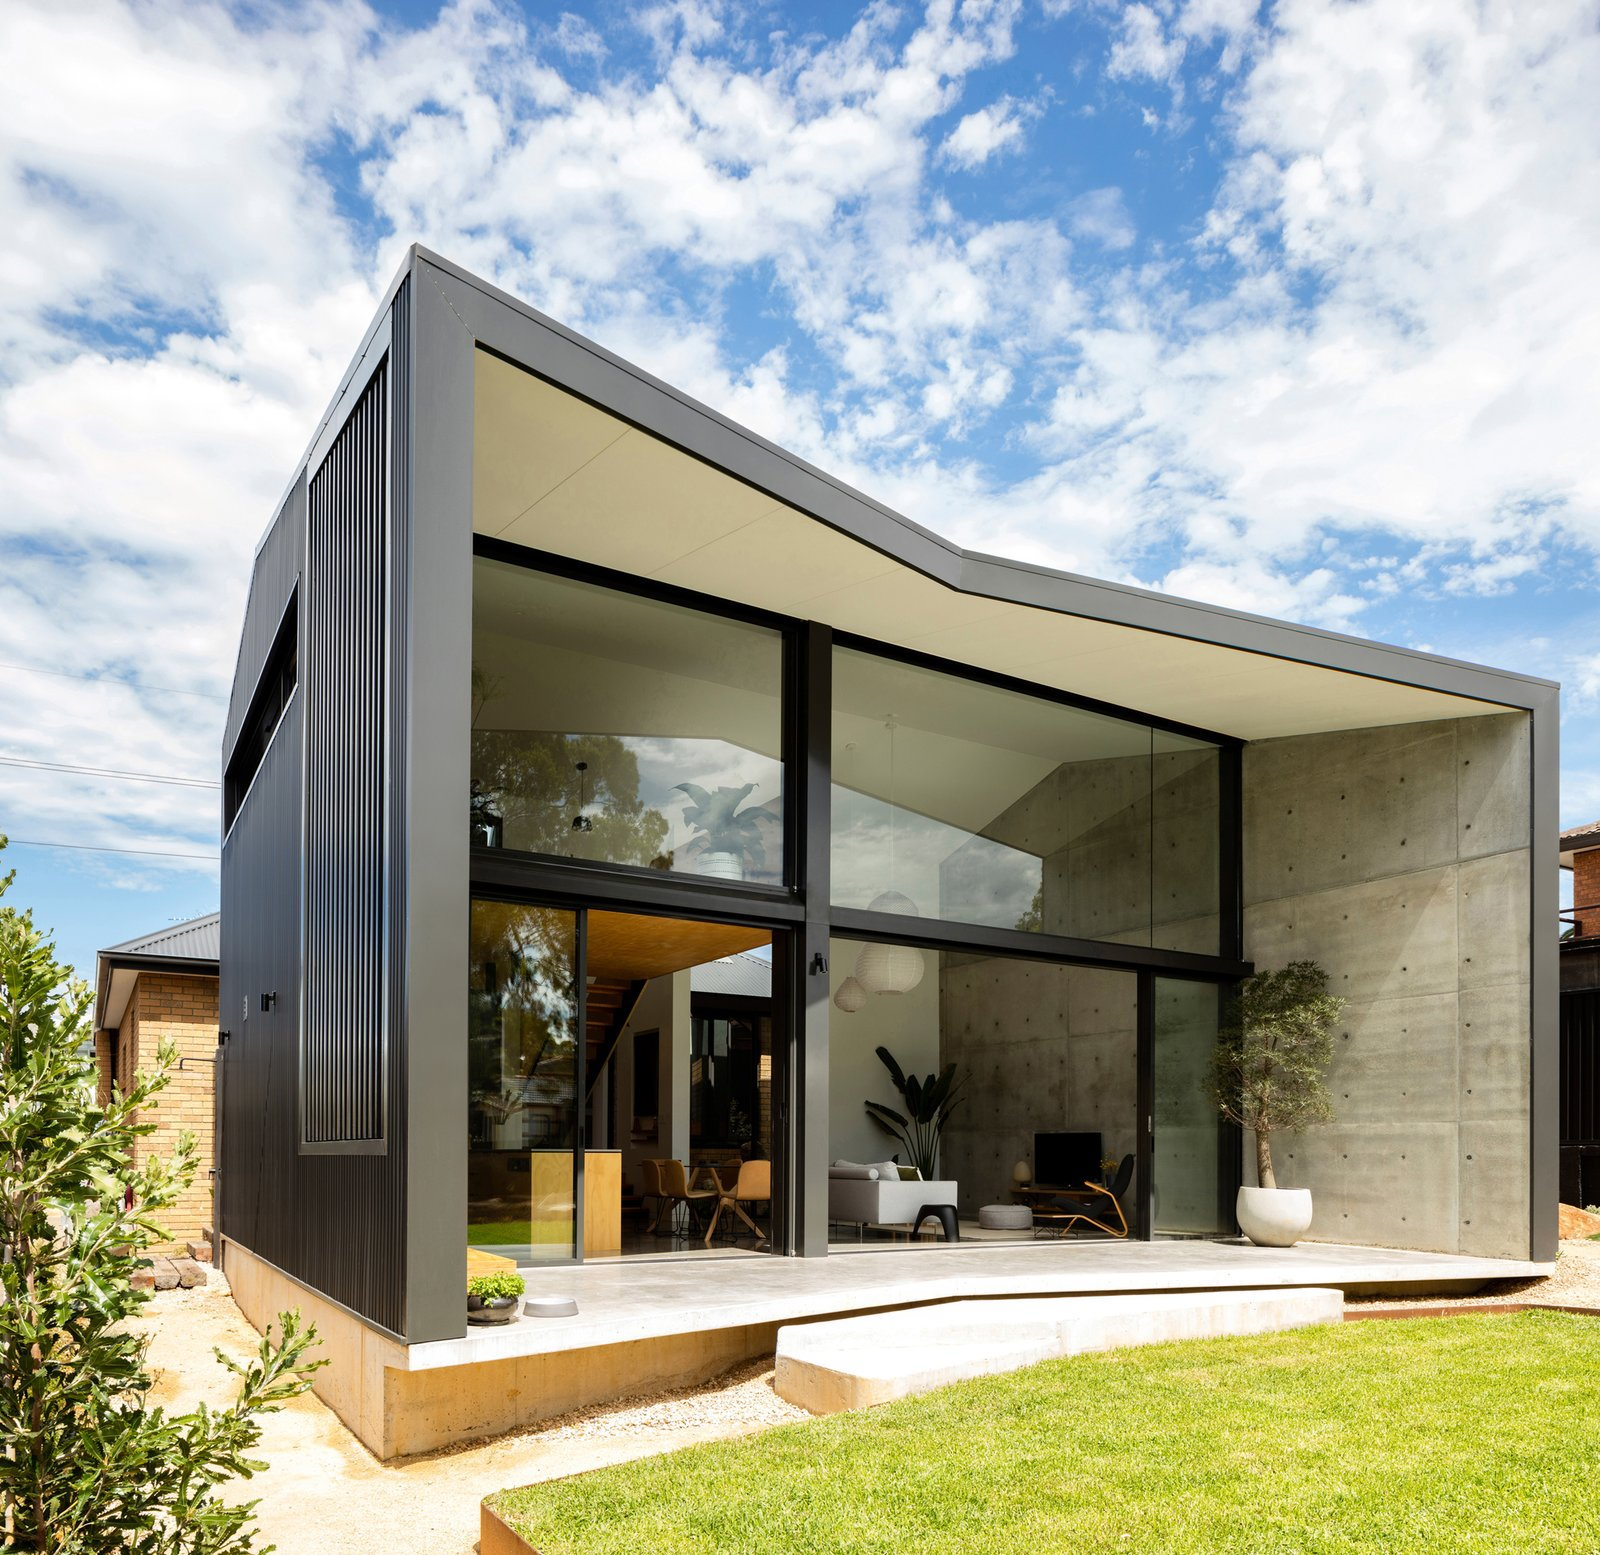 The rear pavilion conceived as an expansive new build sensitively connected to the front 1960's yellow brick original dwelling